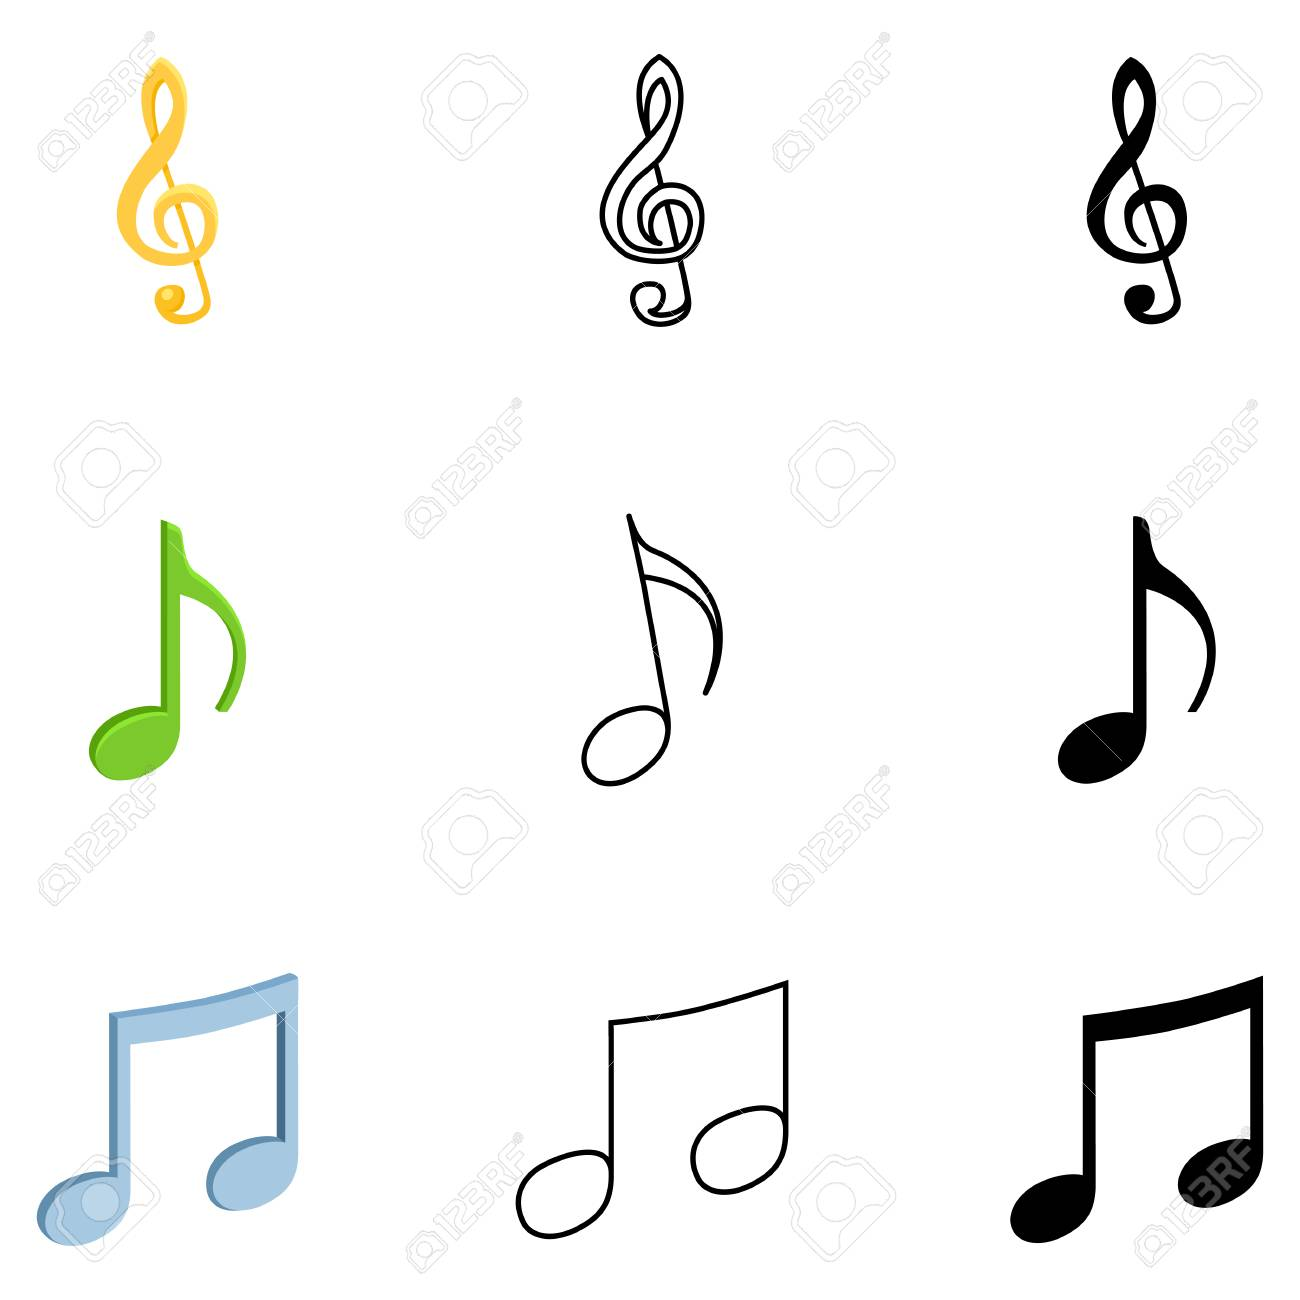 Vector Set Of Music Notes Symbols Different Style Icons Royalty